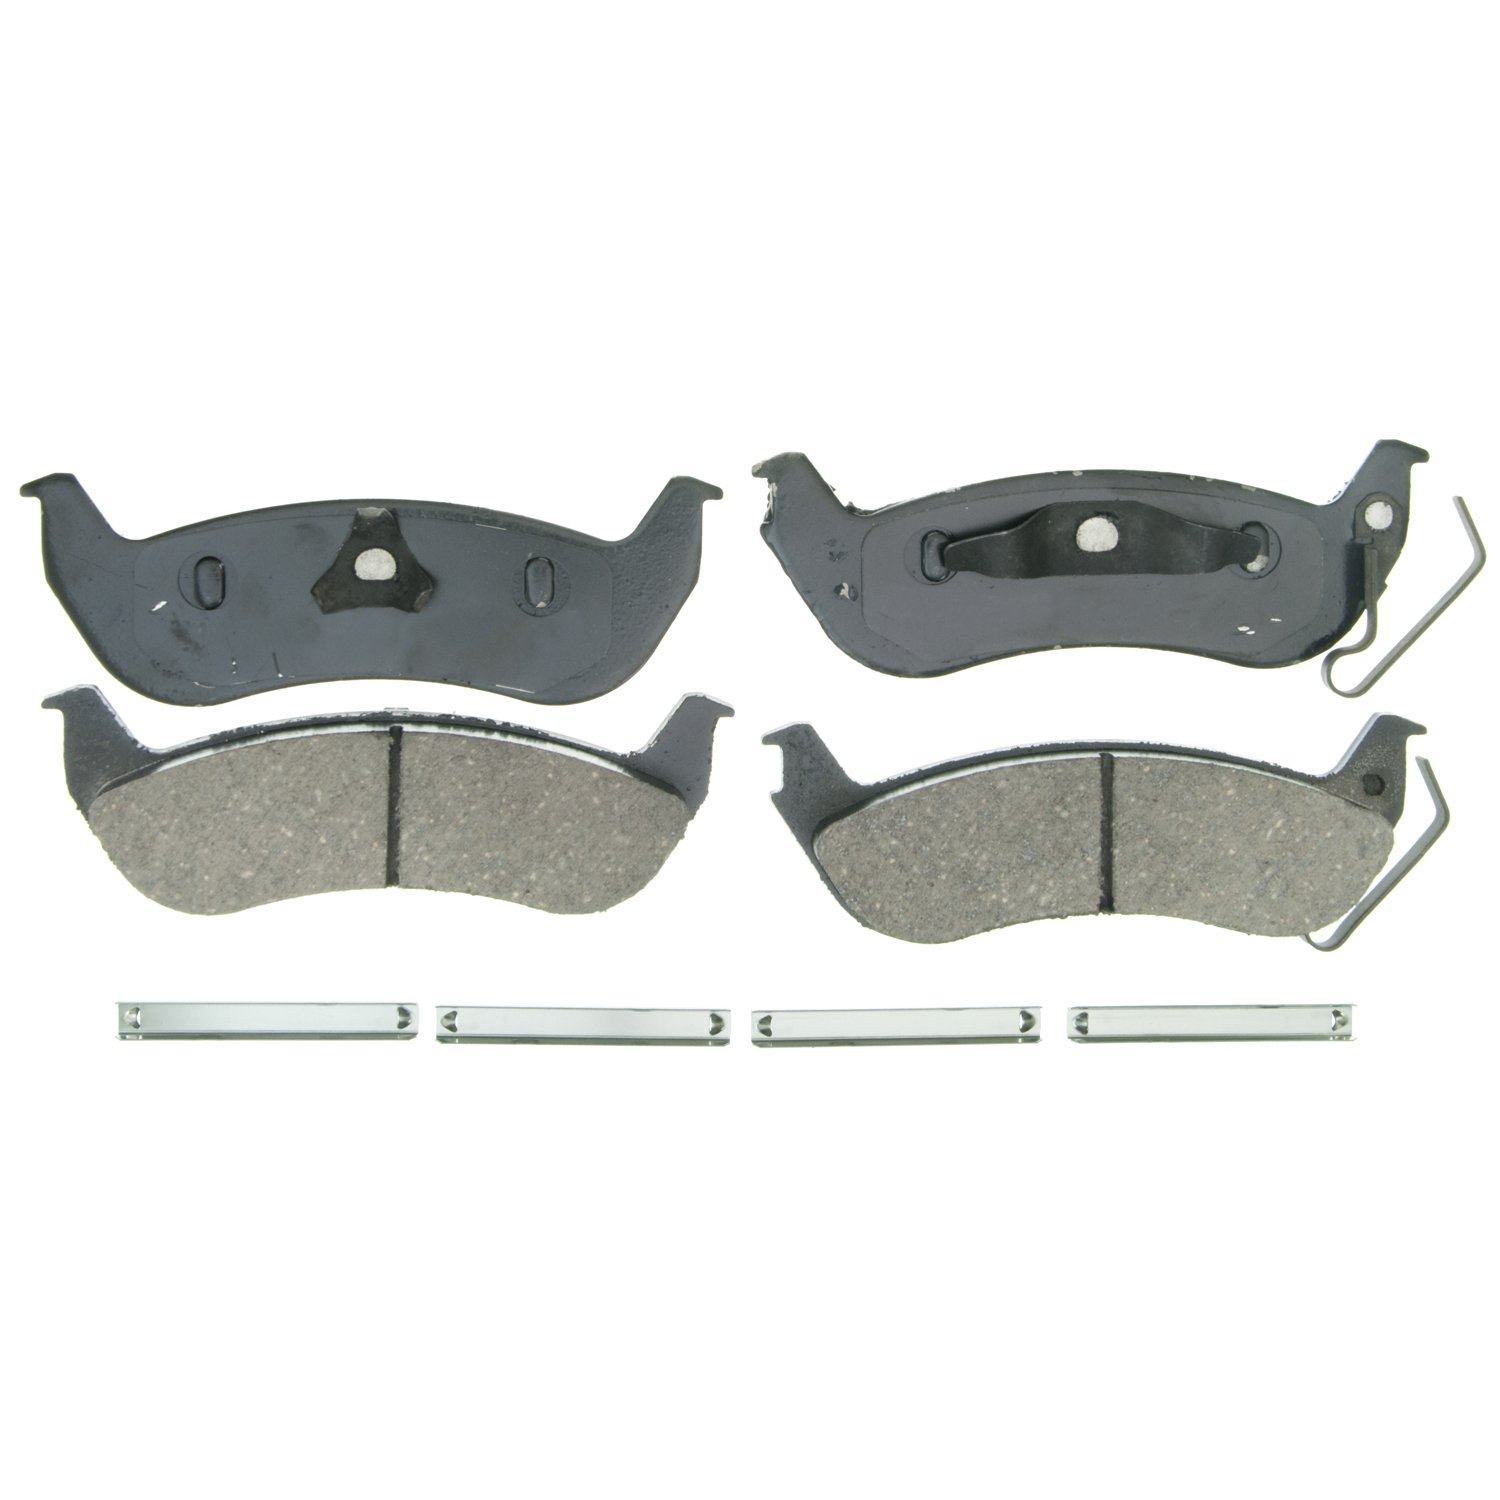 Rear Wagner Brake Wagner QuickStop ZD932 Ceramic Disc Pad Set Includes Pad Installation Hardware